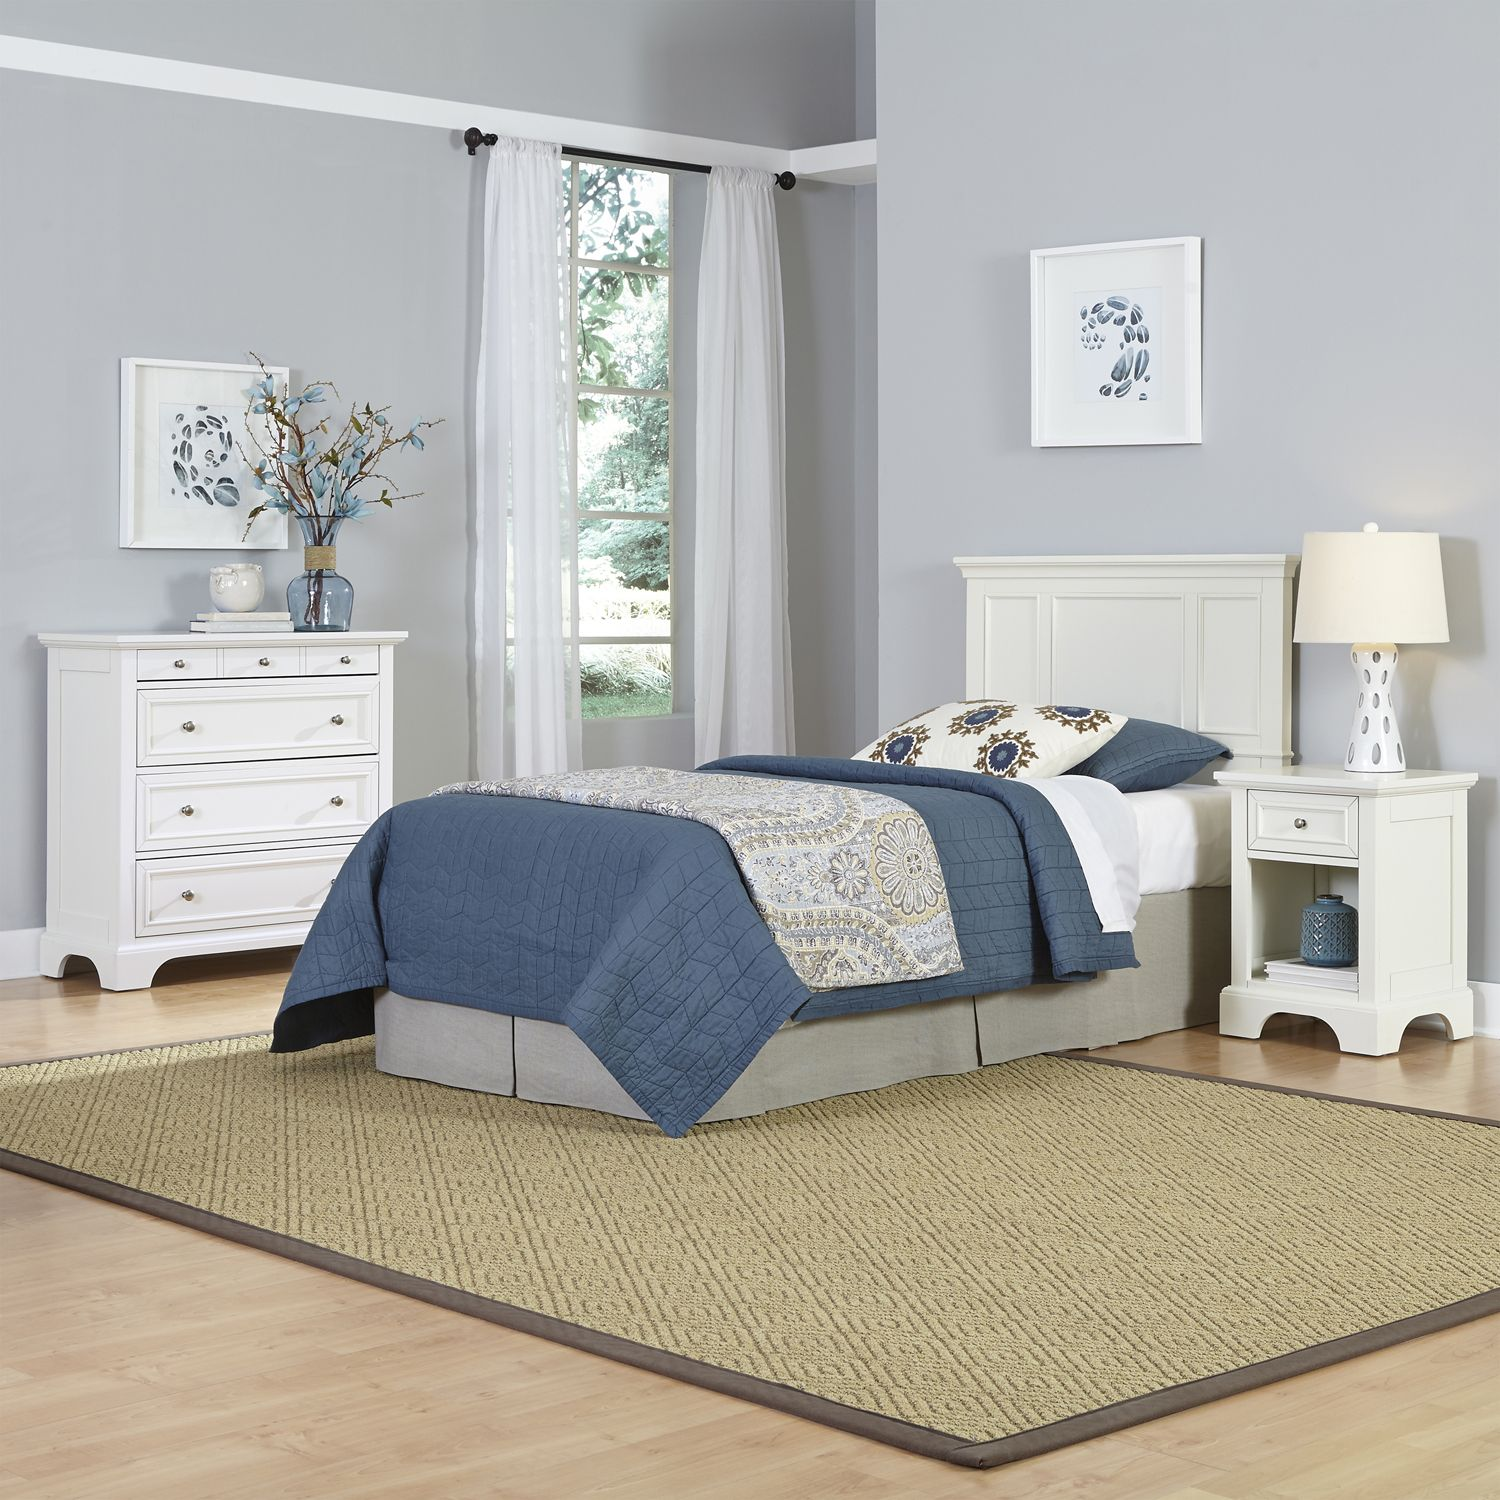 Stunning Home Styles piece Naples Bedroom Set